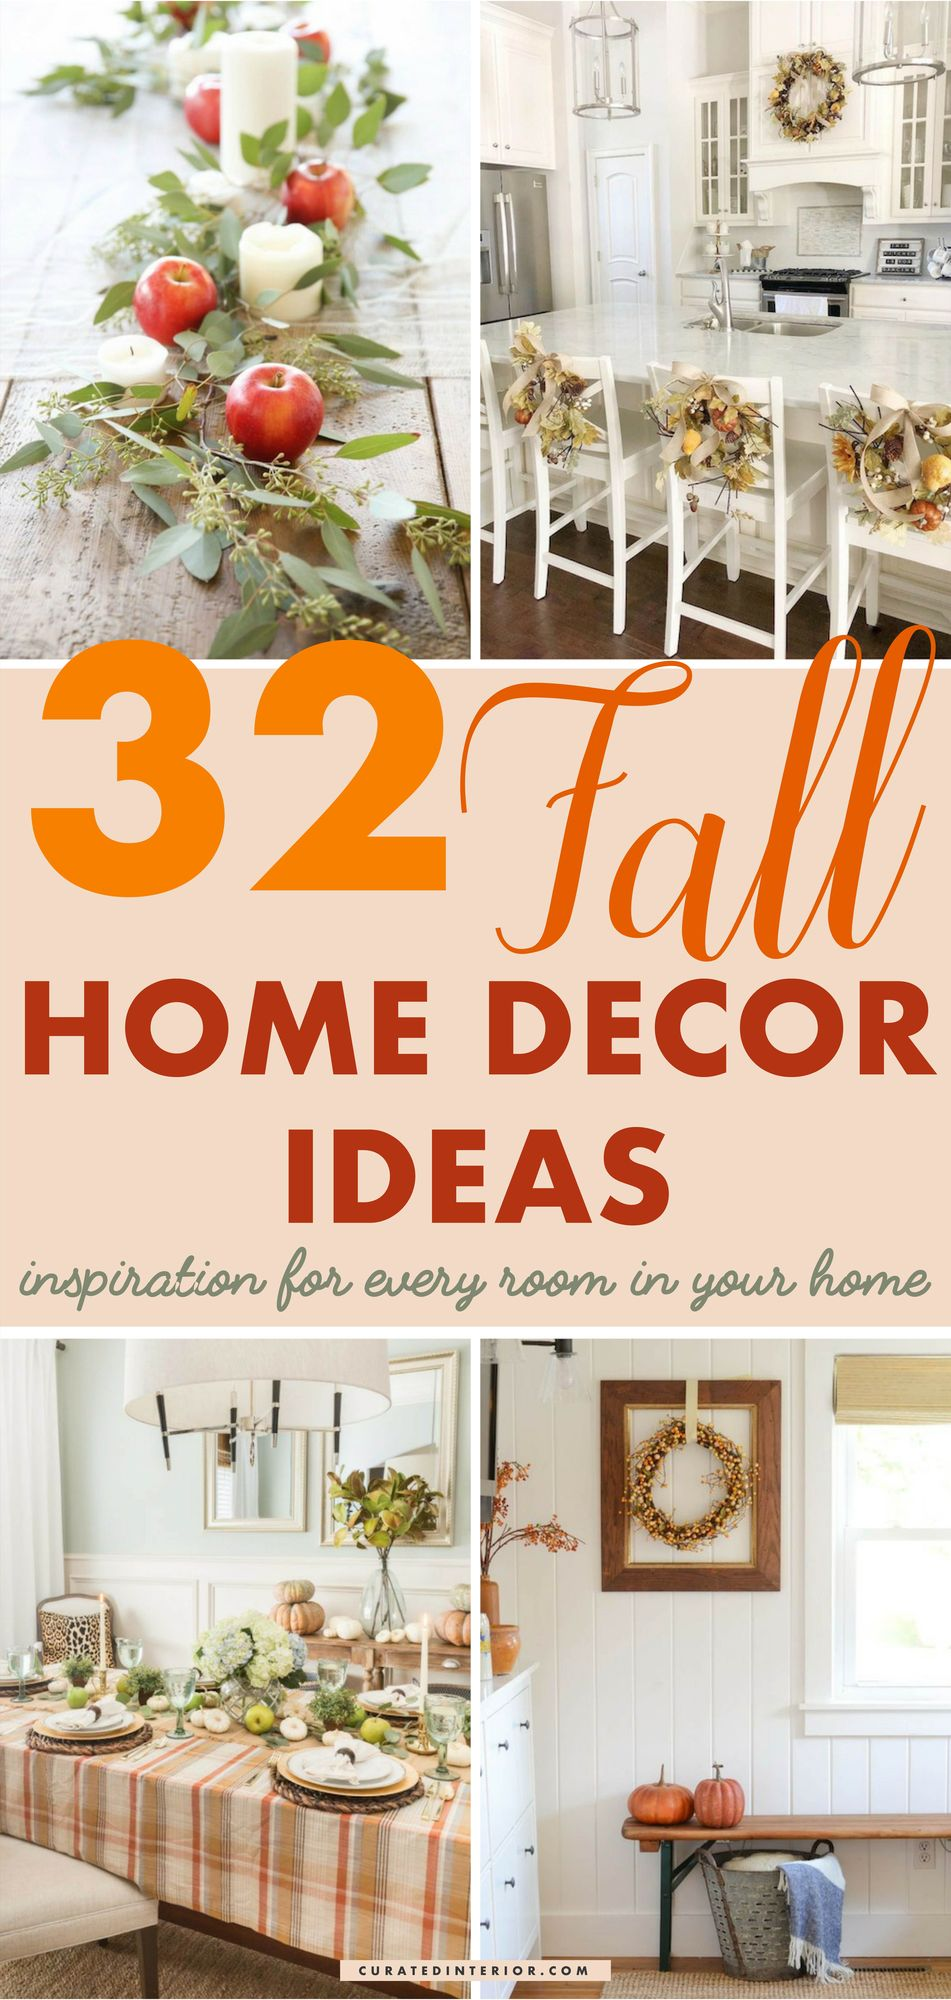 32 Fall Home Decor Ideas And Inspiration For Every Room #FallDecor #FallHomeDecor #FallDecorIdeas #FallHome